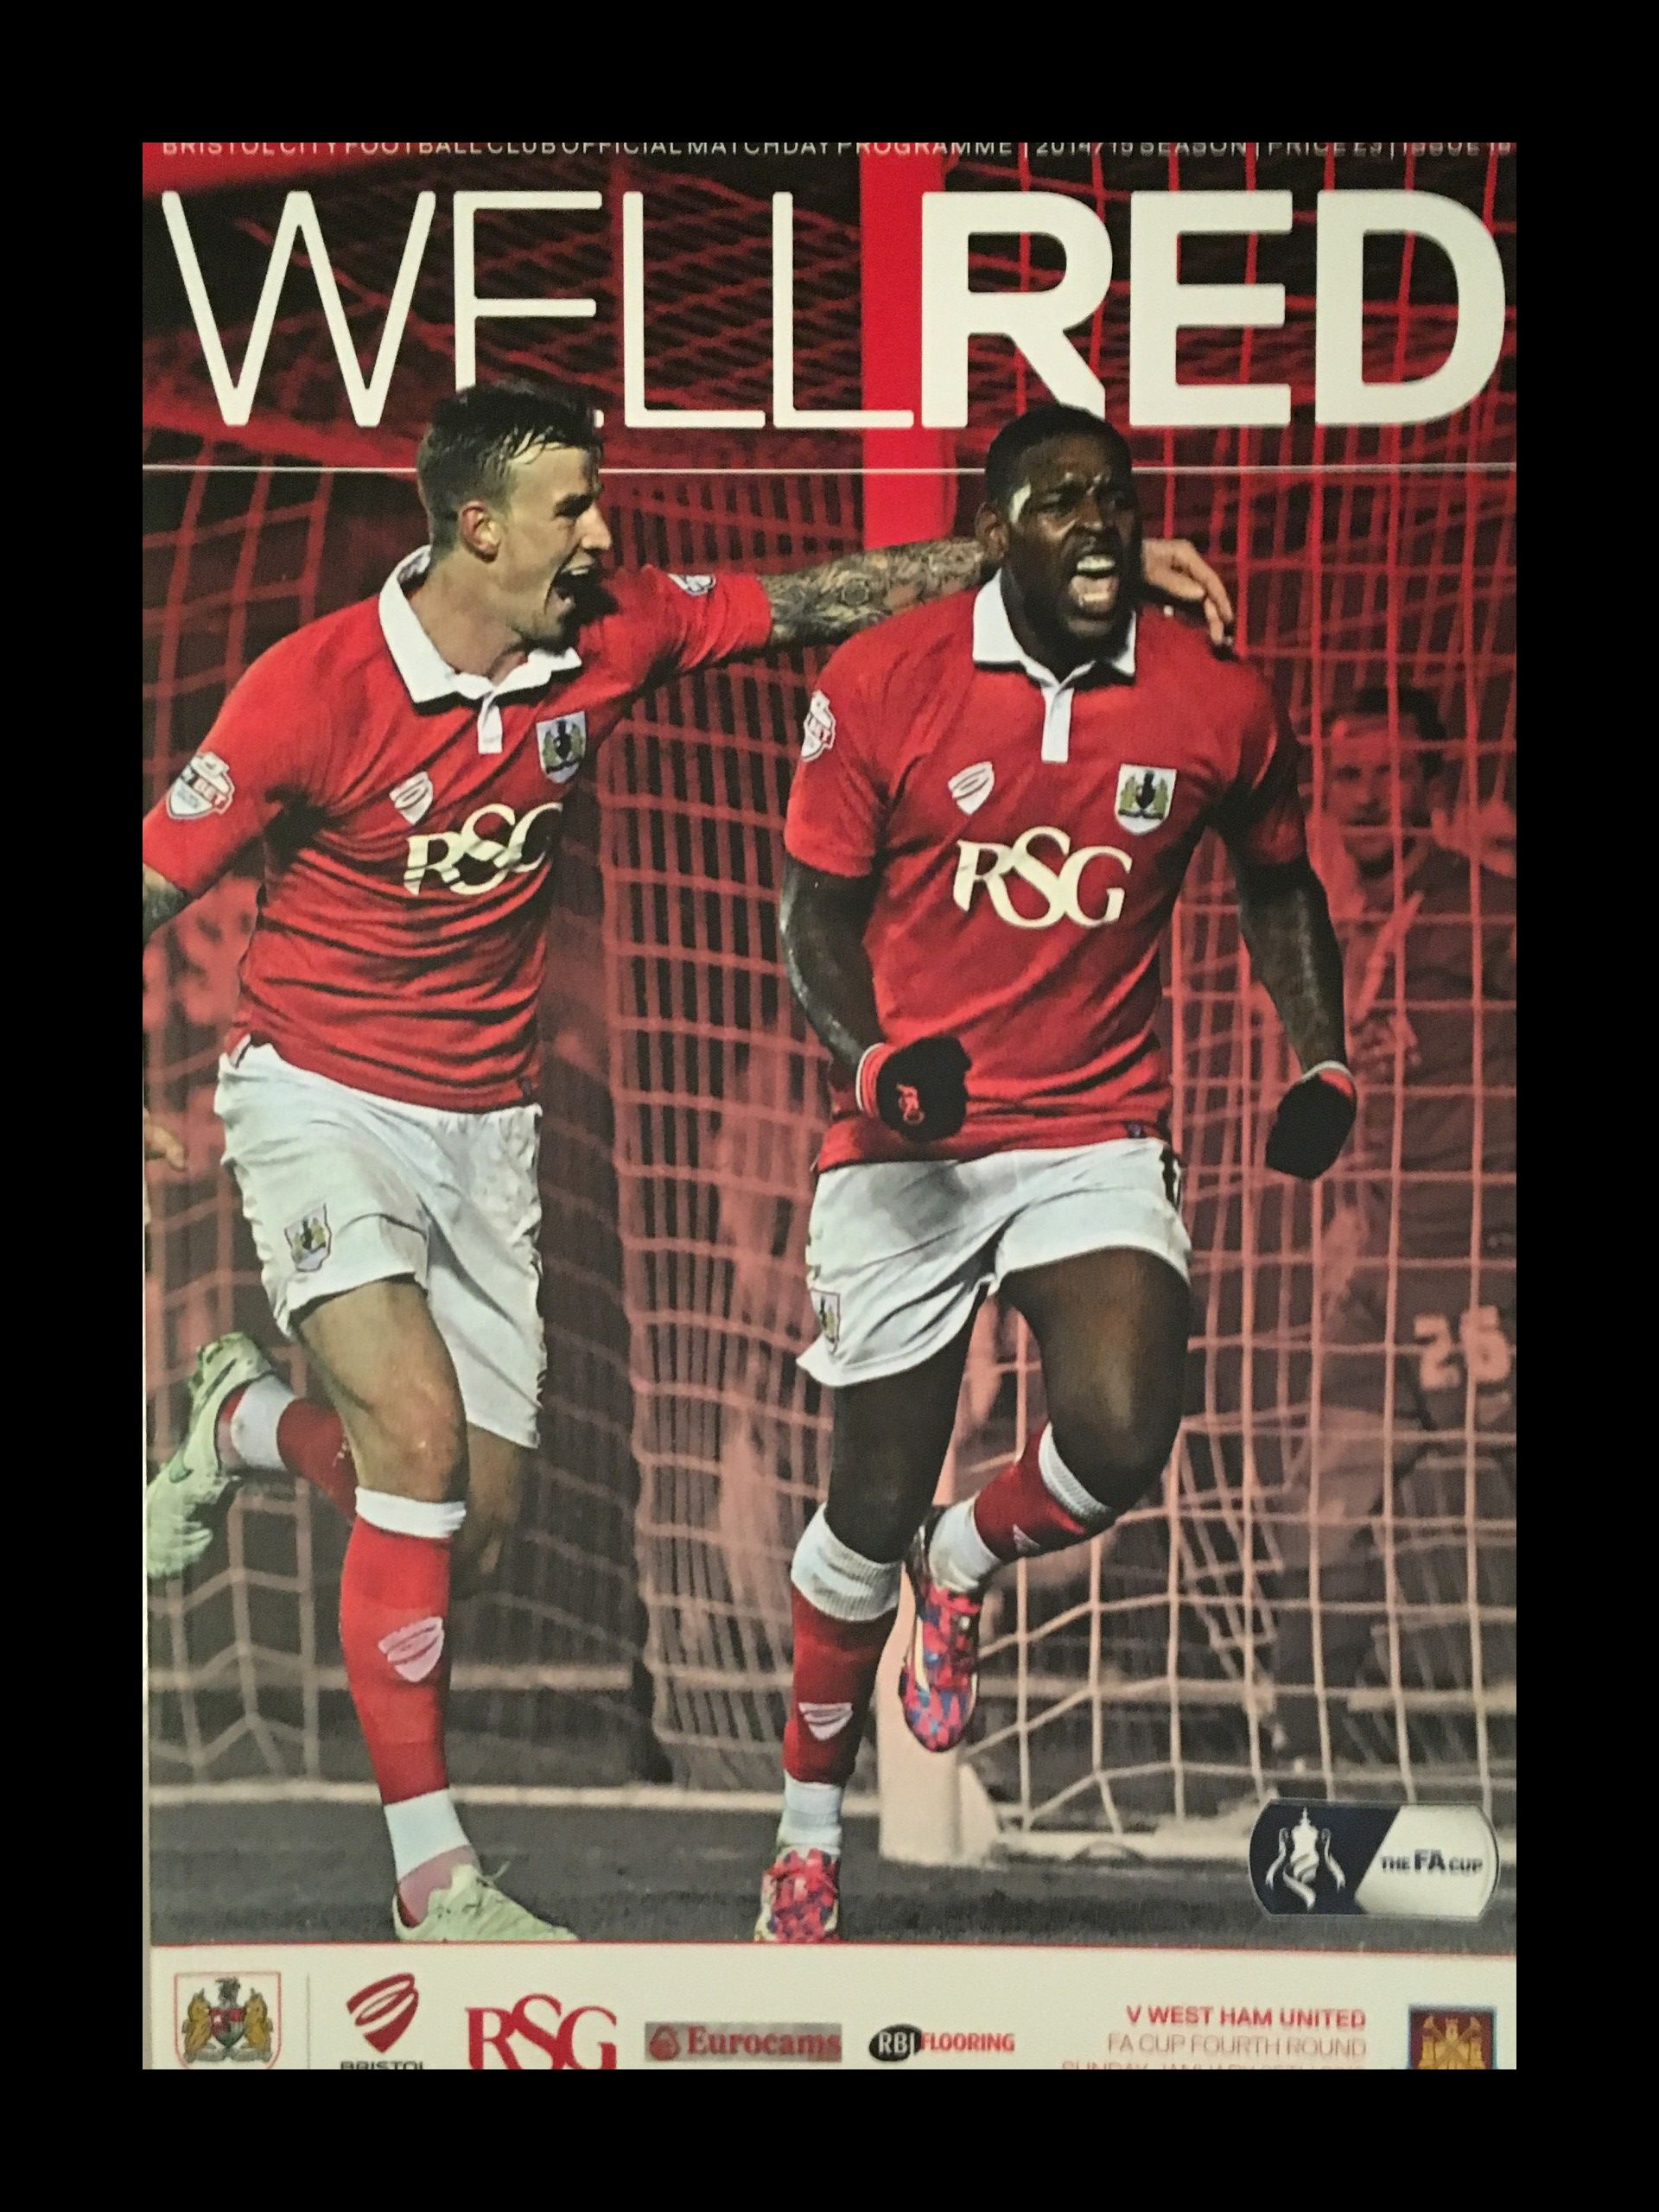 Bristol City v West Ham United 25-01-2015 Programme